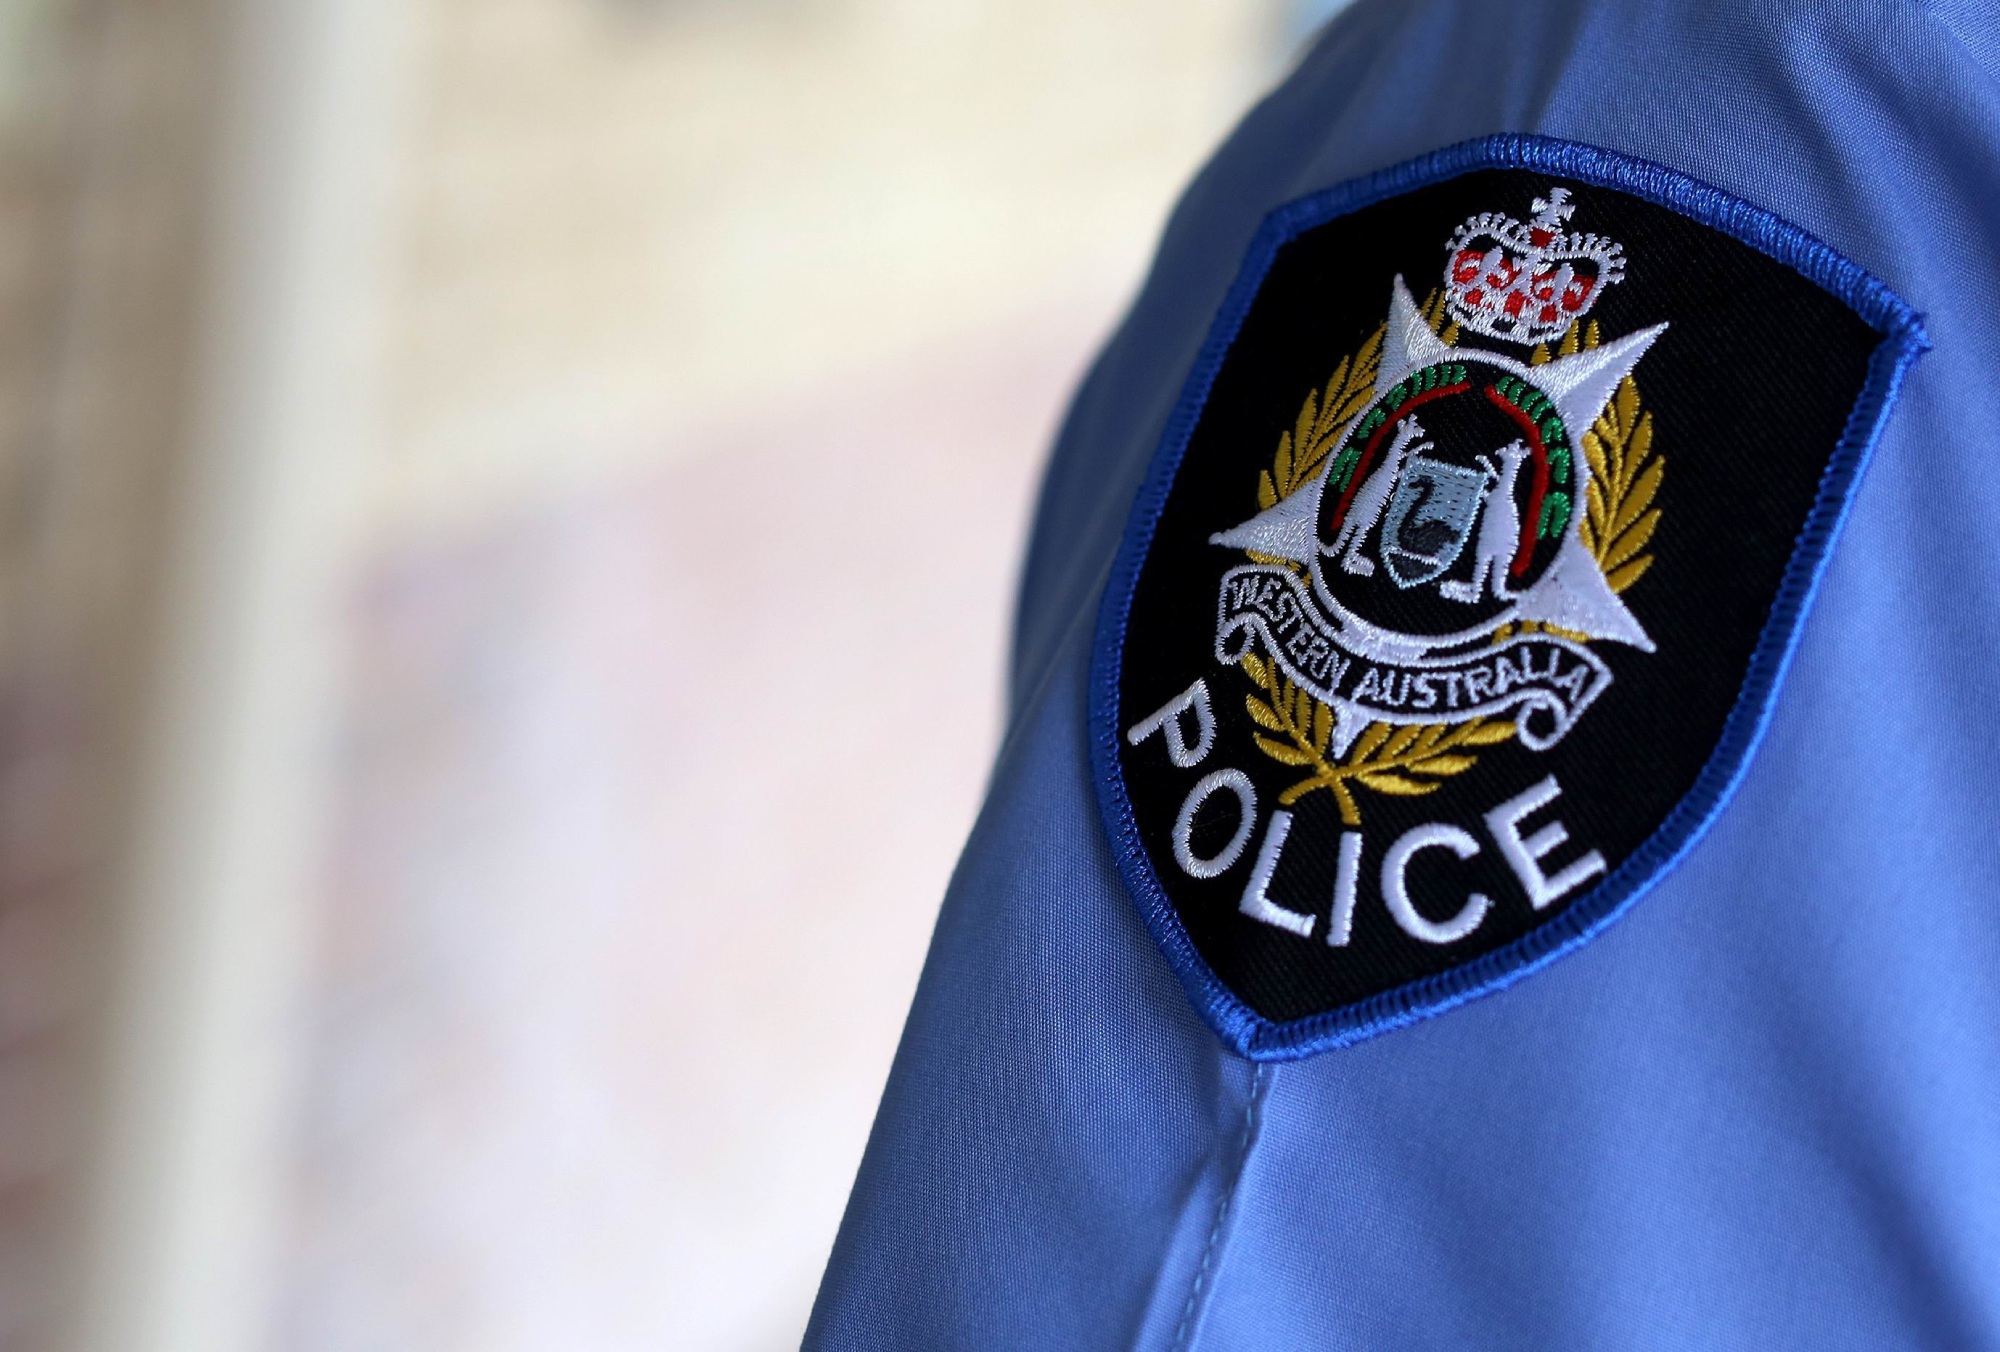 Joondalup ATM robbery: two men charged over service station incident